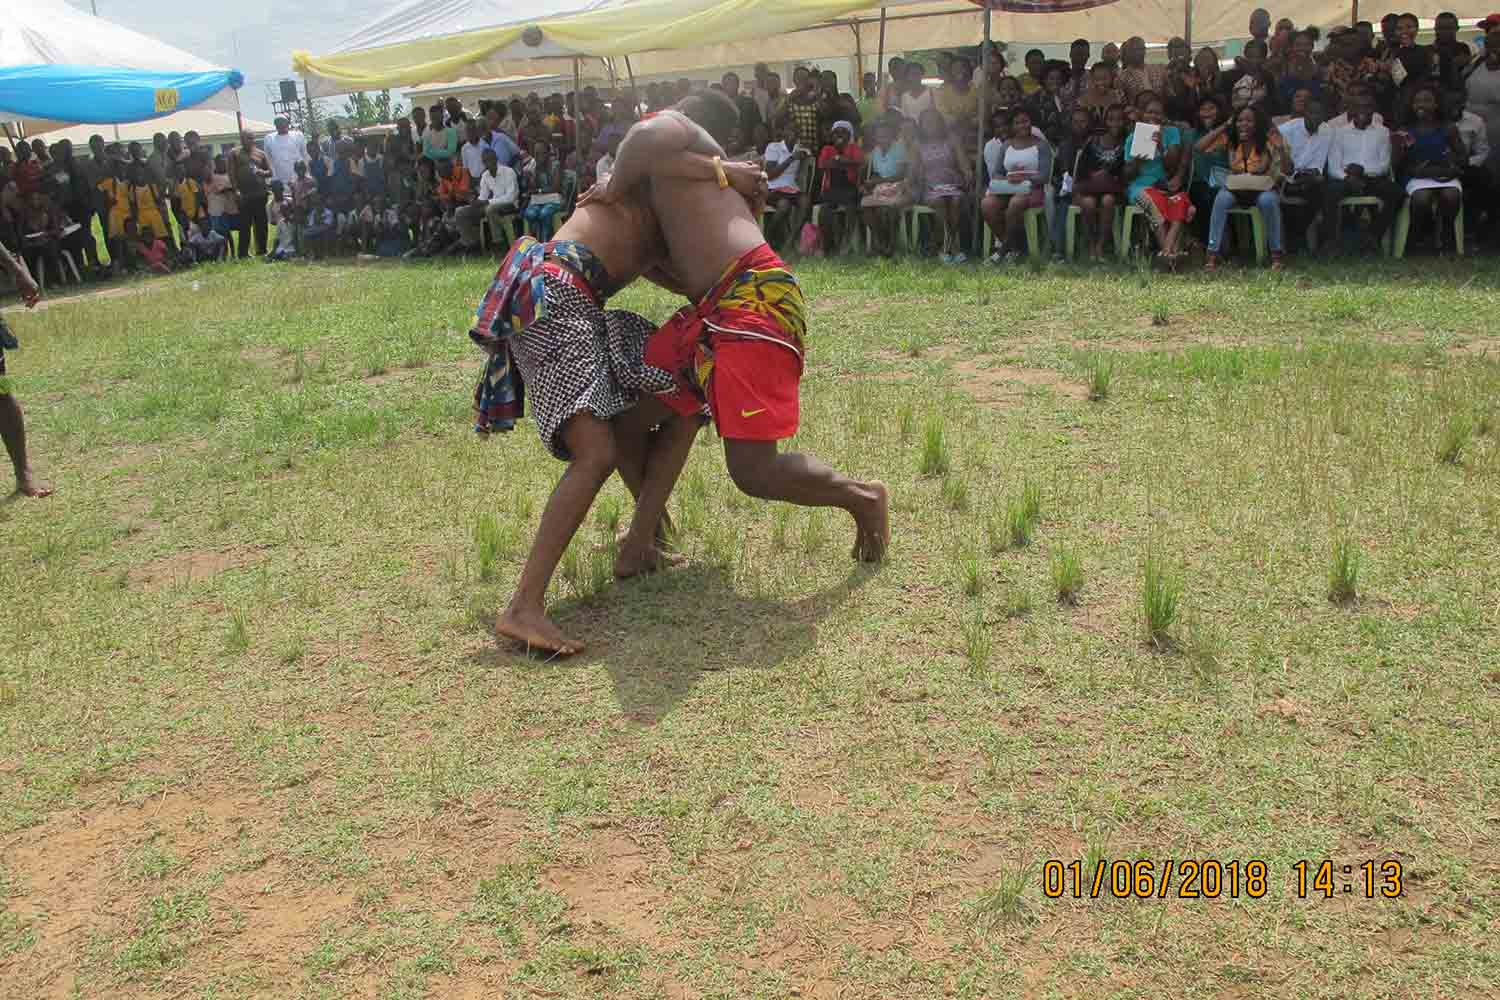 The 2018 traditional wrestling contest